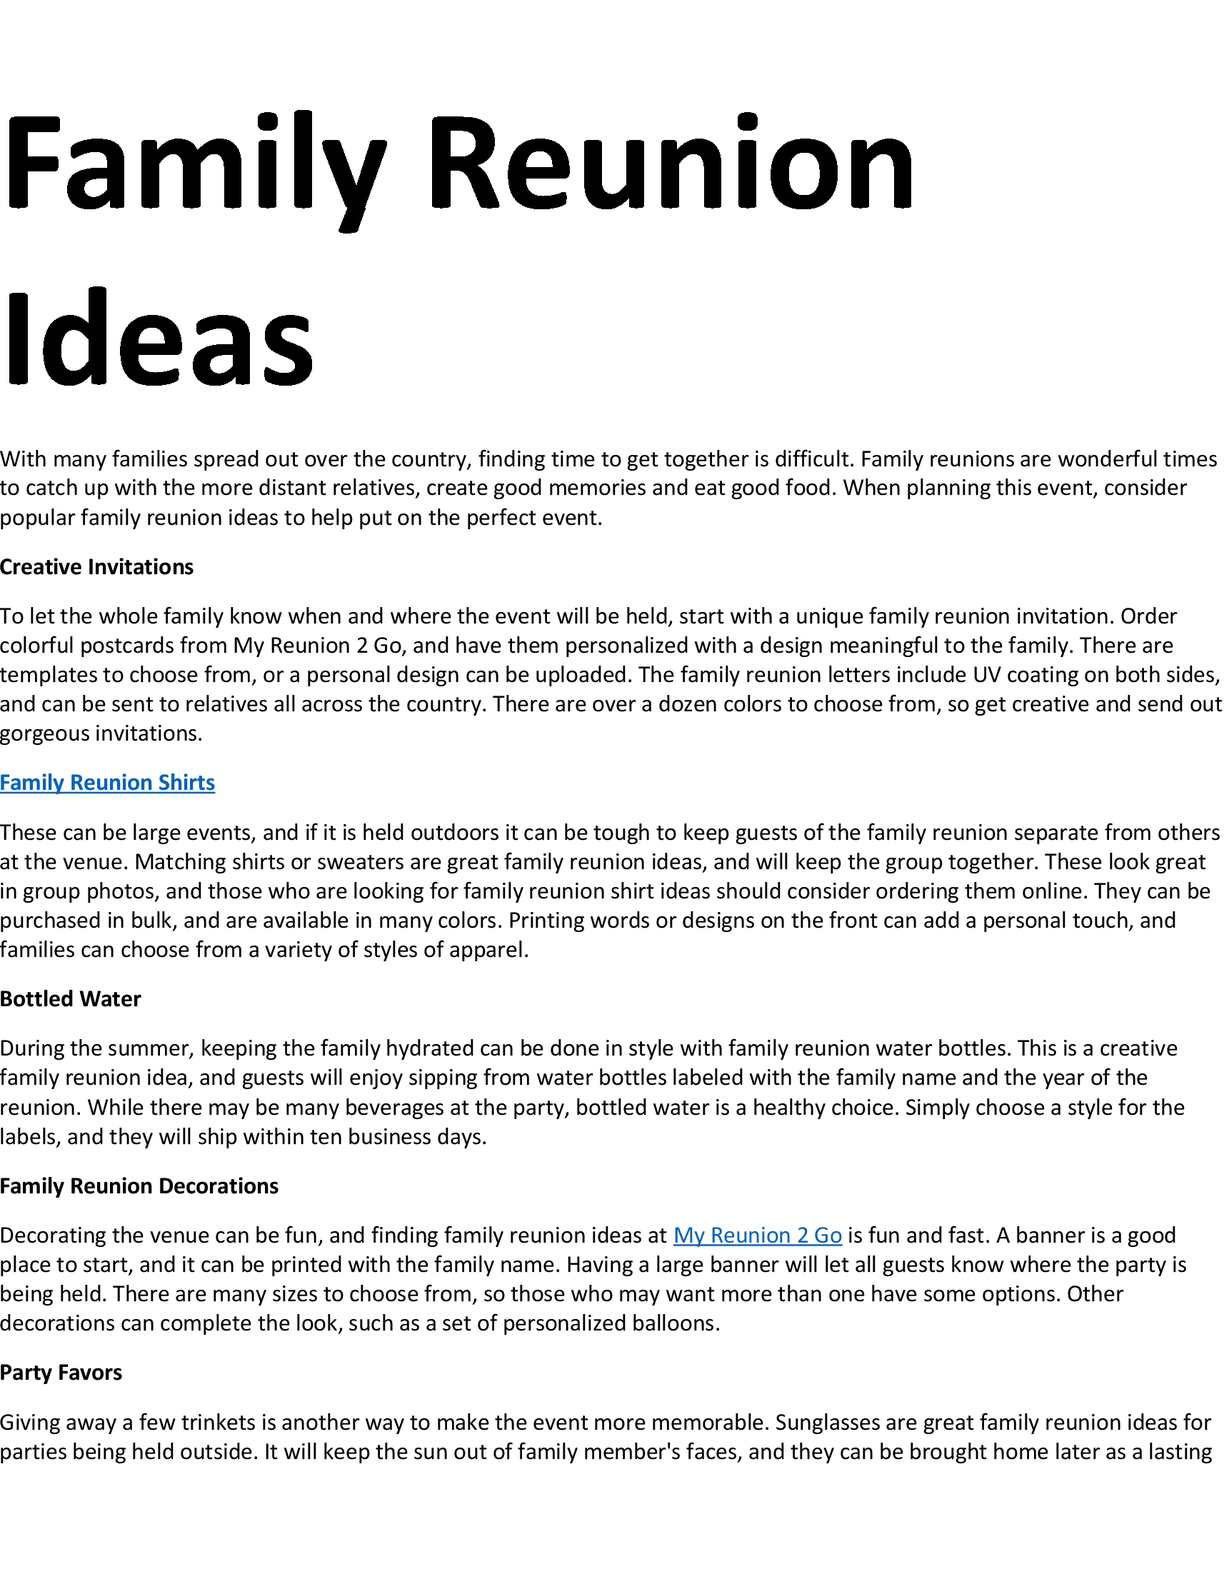 Family Reunion Ideas >> Calameo Family Reunion Ideas